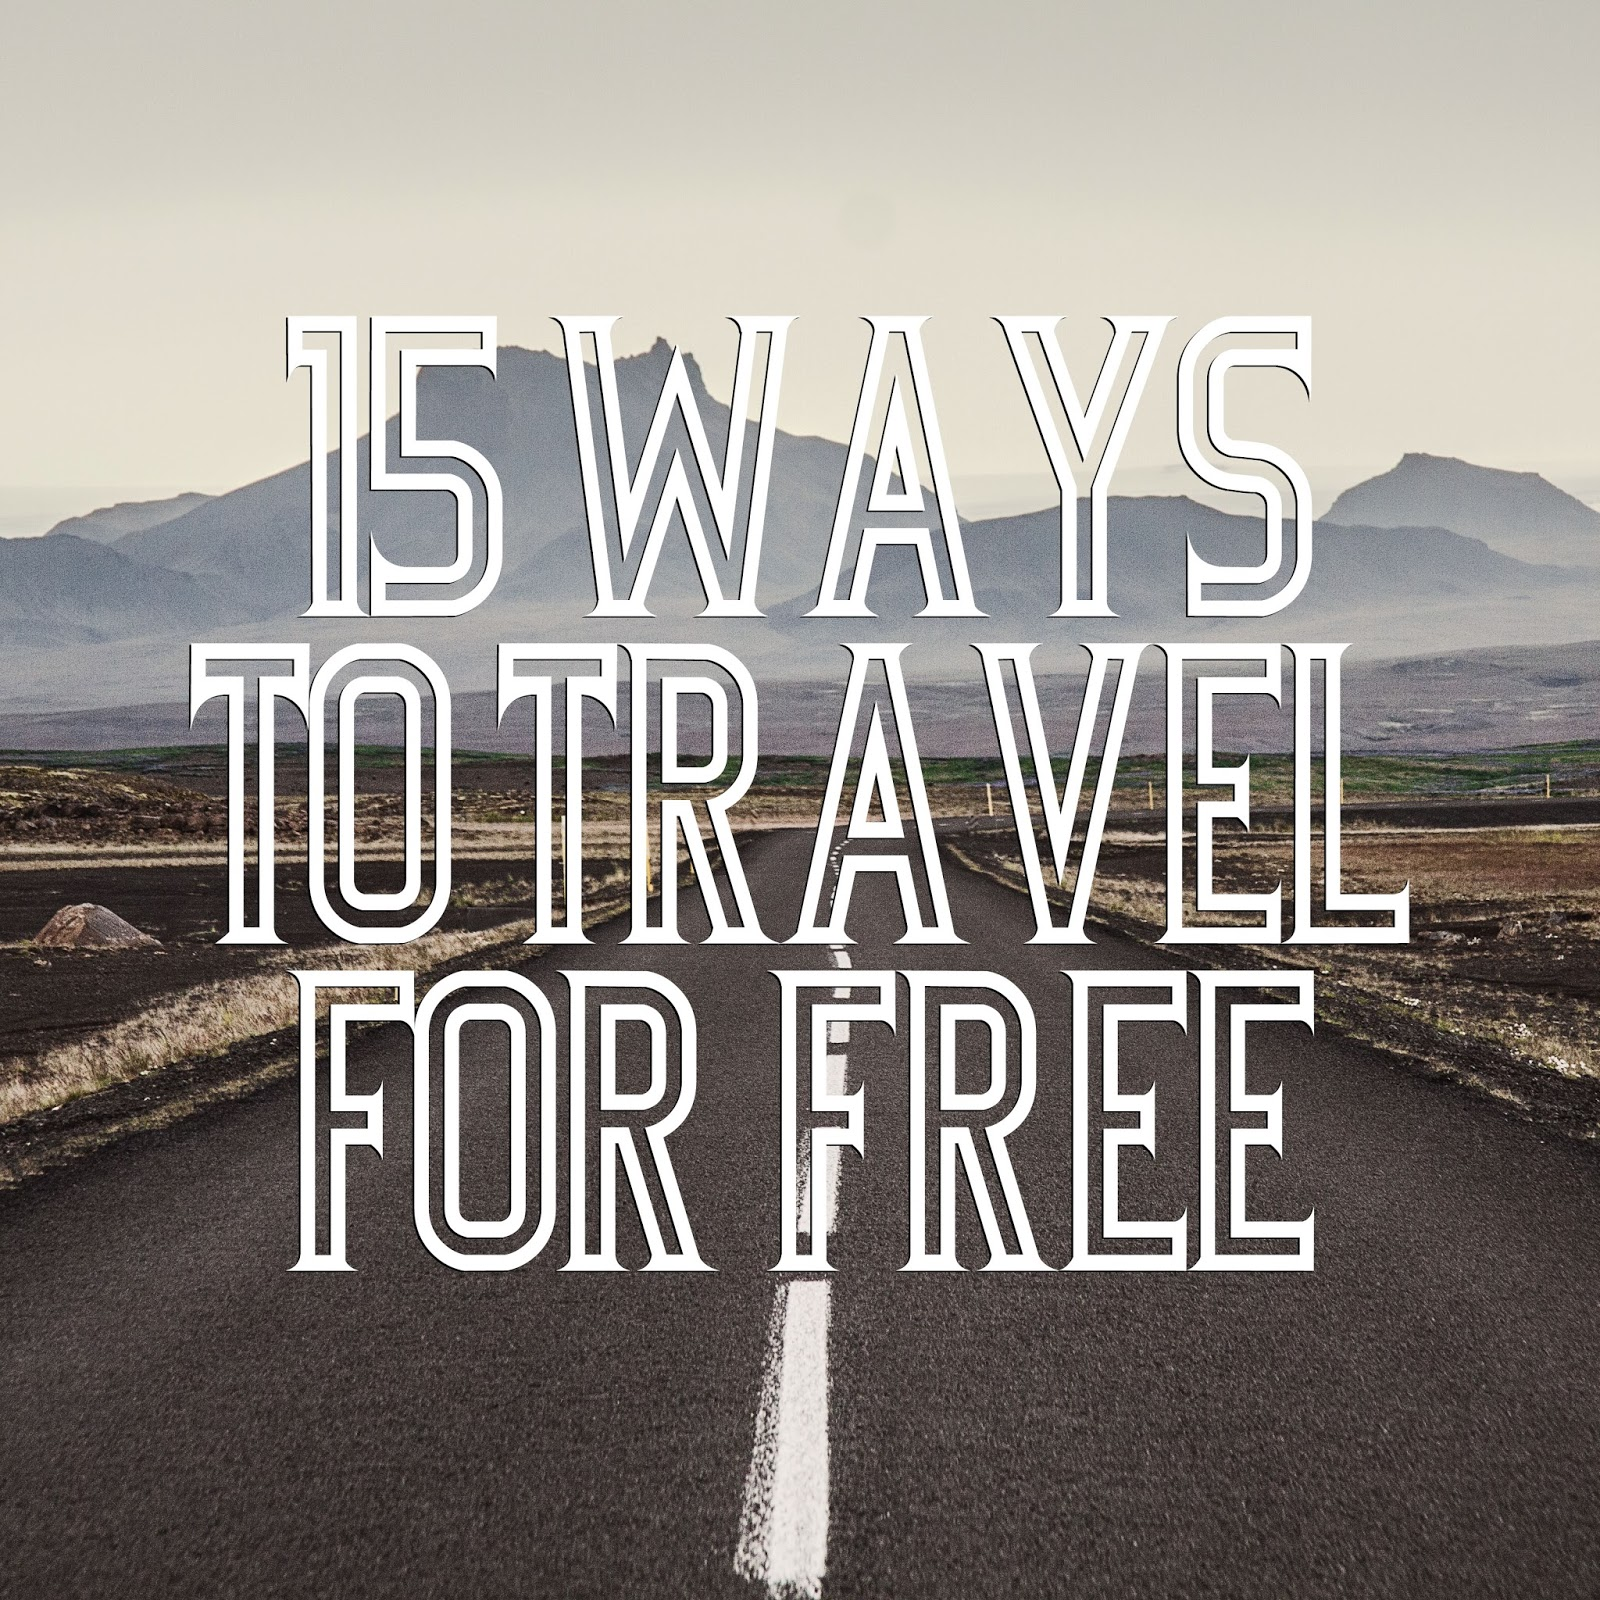 15 Ways to Travel For Free - The Art of Cheap Travel